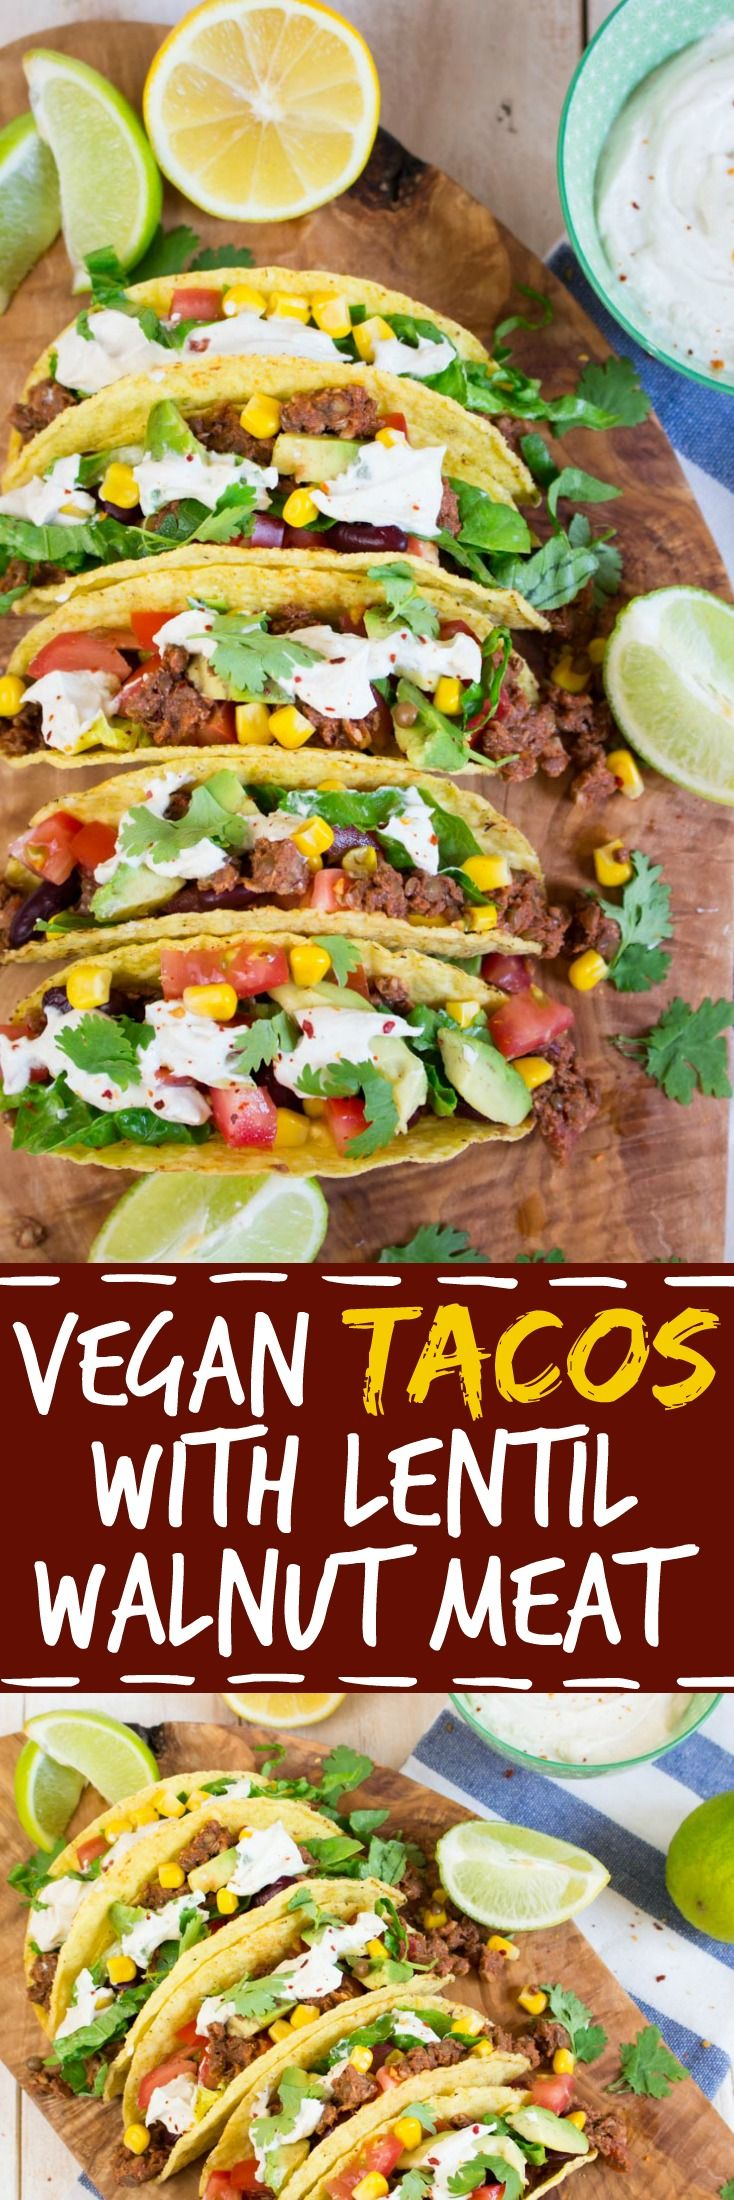 Celebrate Taco Tuesday with these vegan tacos with lentil walnut meat and cashew sour cream. They're super delicious and packed with nutrients!